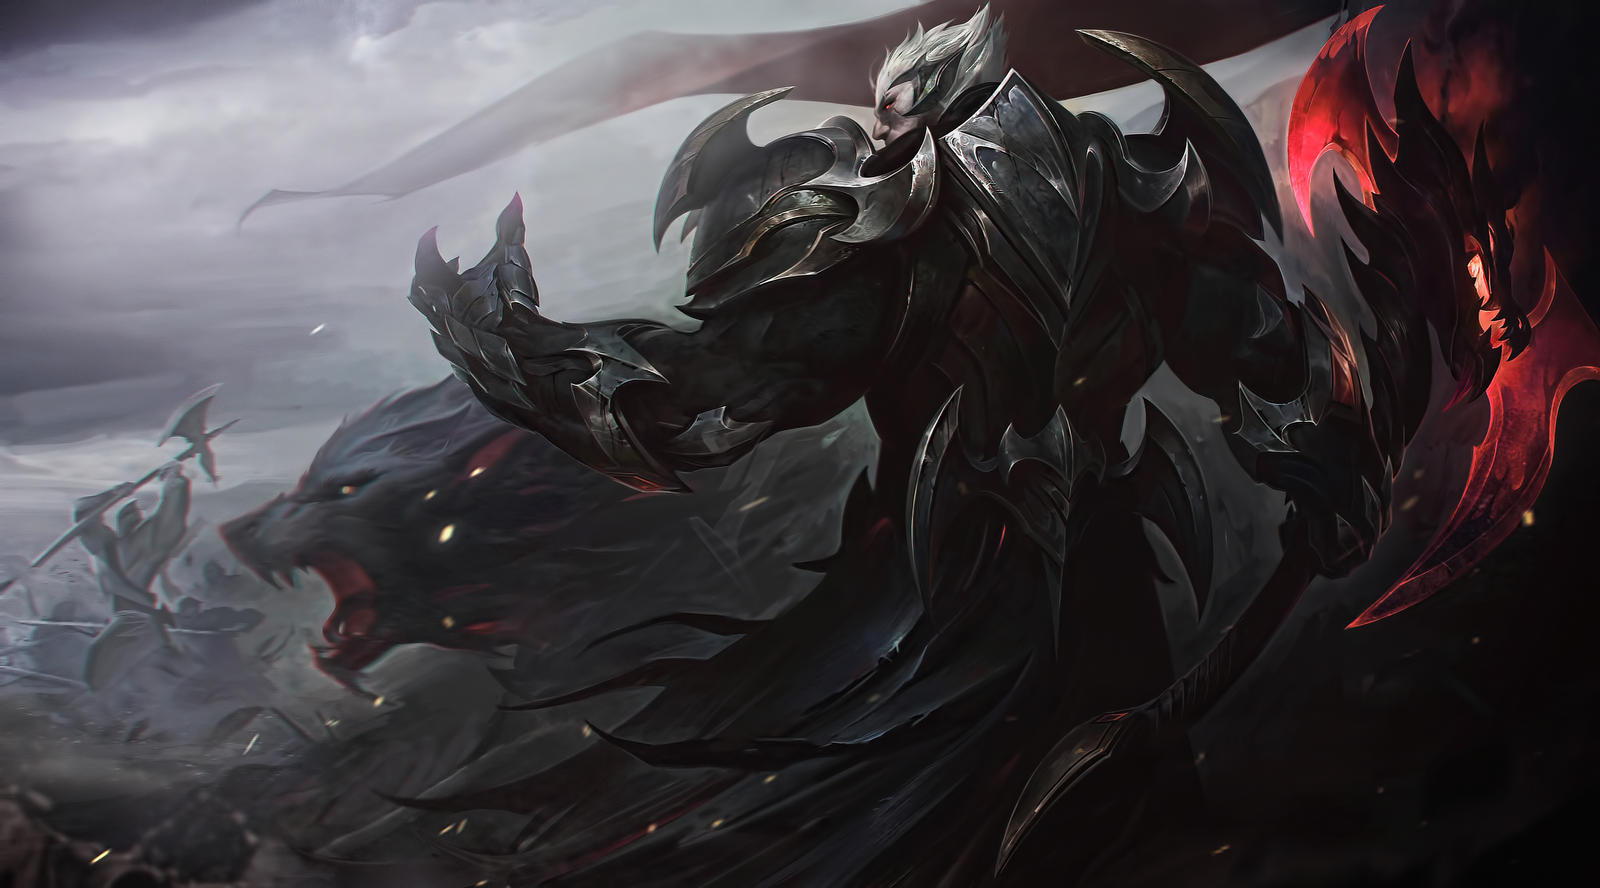 God King Darius League Of Legends 4k Hd Wallpaper By Alxv1 On